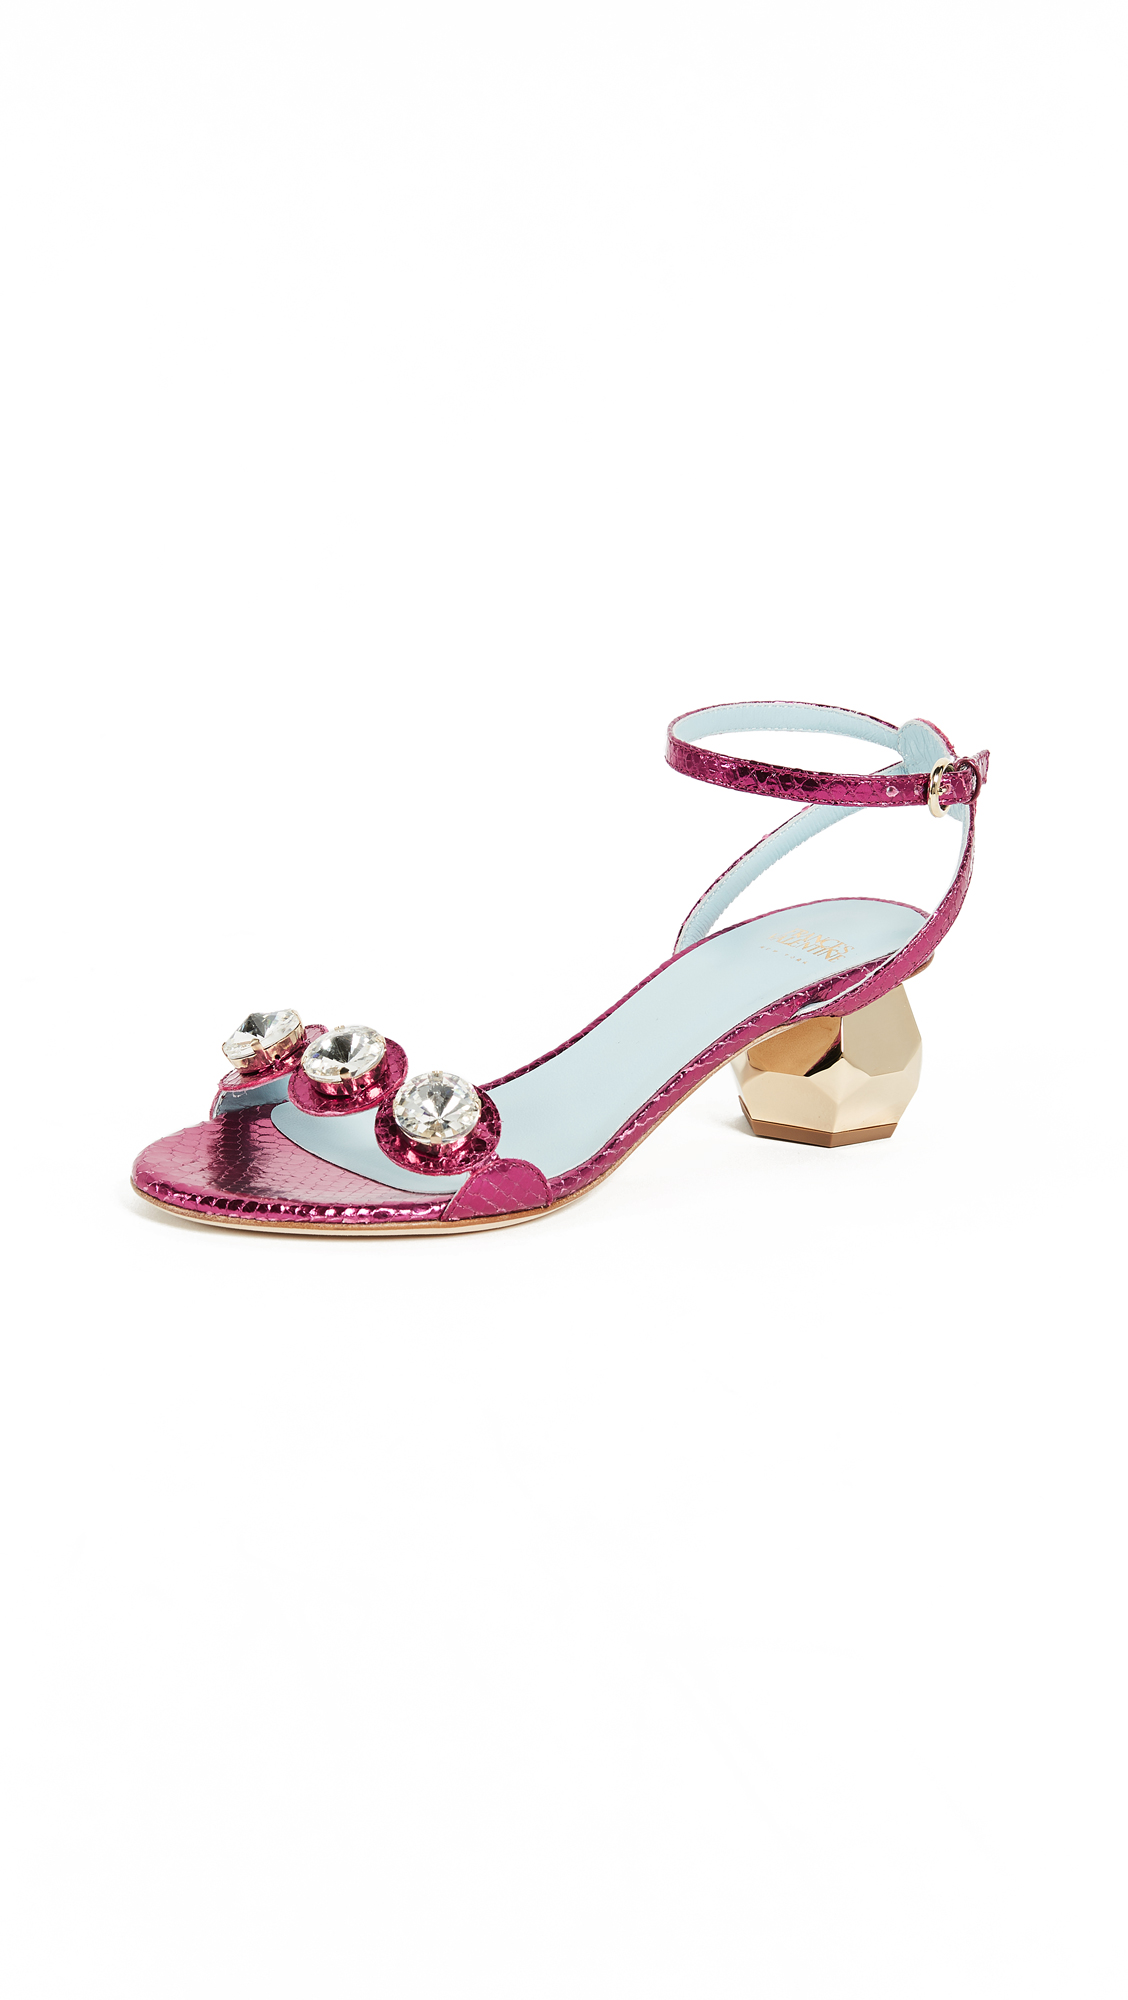 Frances Valentine Beatrix City Sandals - Fuchsia